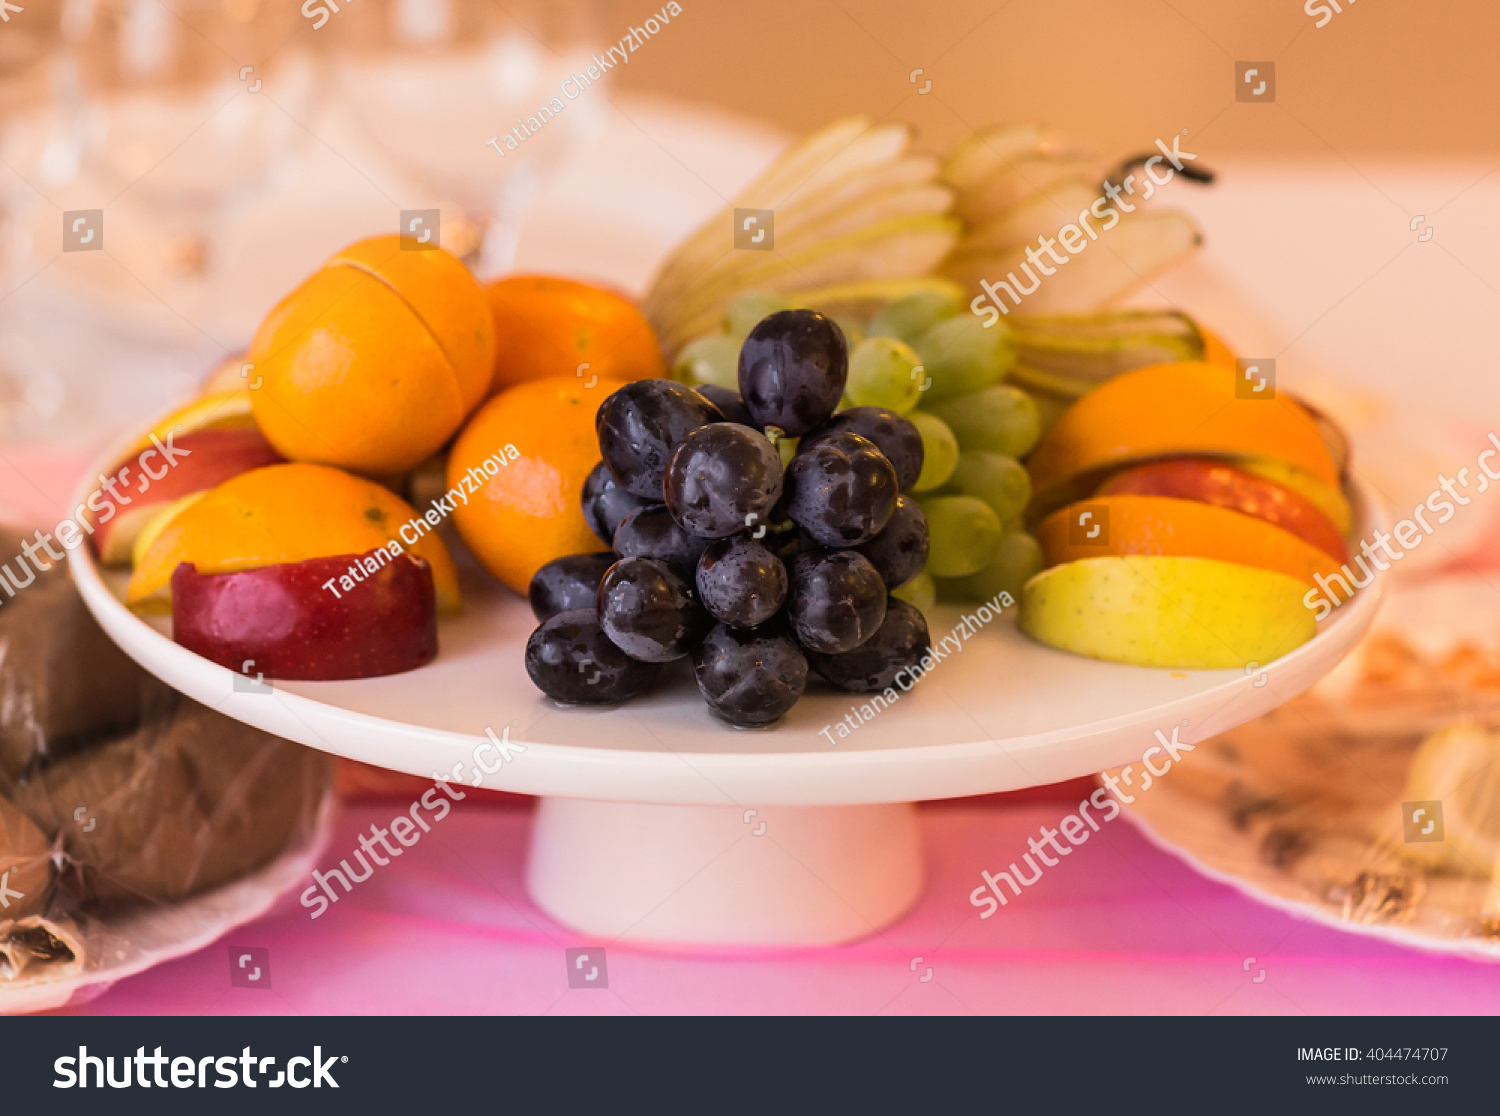 Fresh fruit party plate #404474707